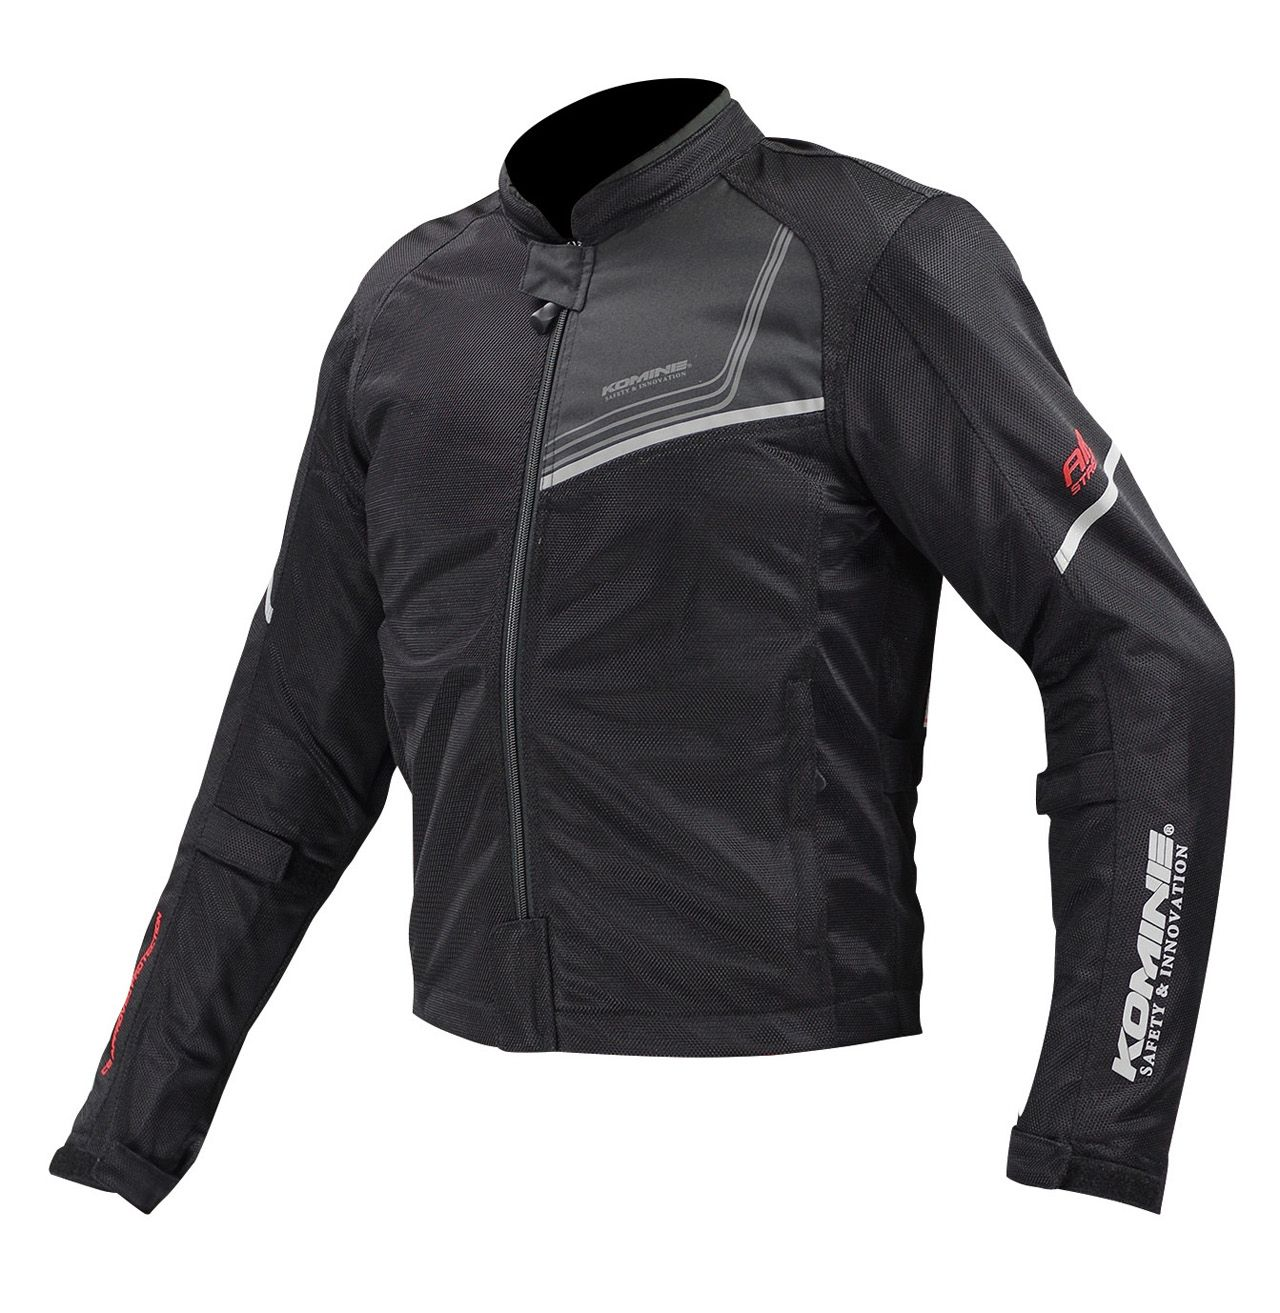 JK-117 Protect Full Mesh Jacket Gimon